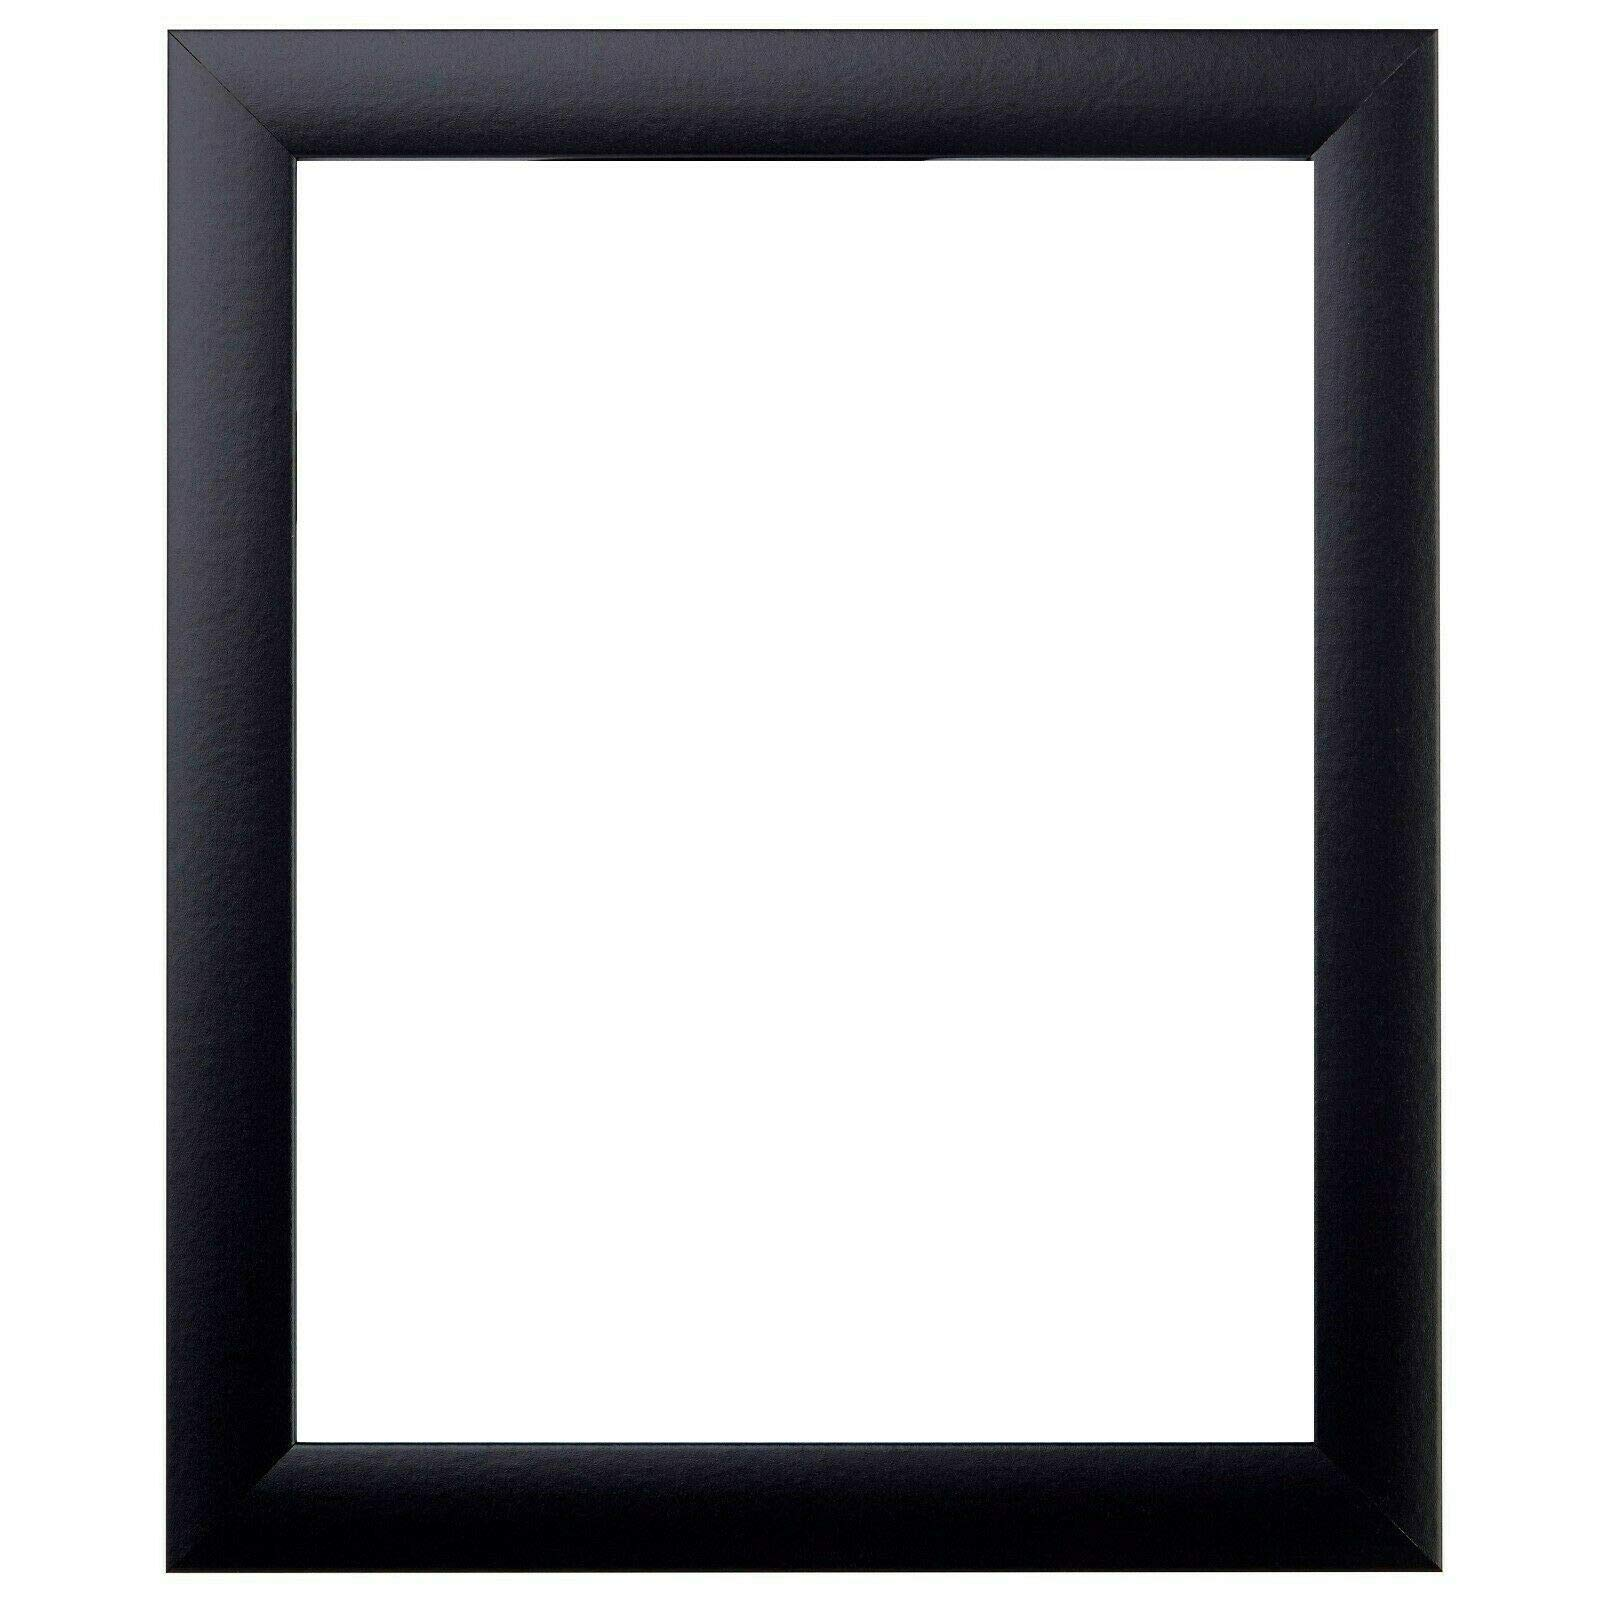 US Art Frames 14x17 Black 1 Inch Flat MDF Wood Composite, Wall Decor Picture or Poster Frame by US Art